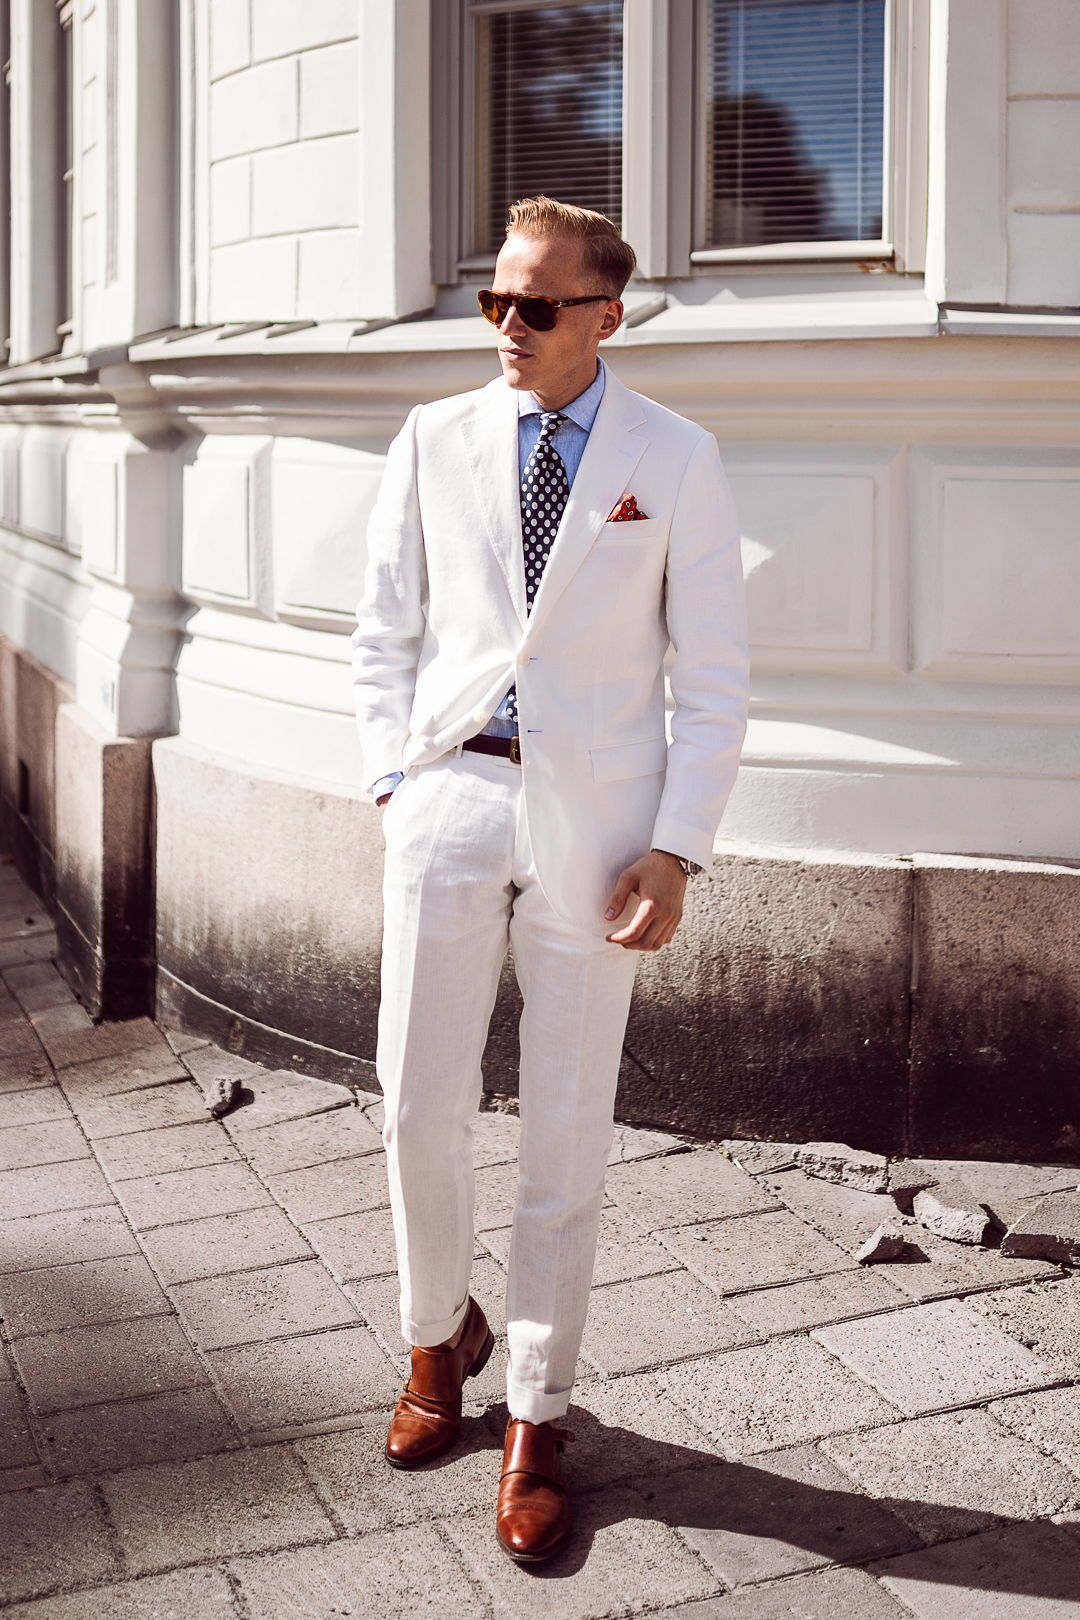 8ee26dee18f2 White suit, polka-dot tie, light blue shirt and brown double monk strap  shoes. #whitesuit #suitandtie #menswear